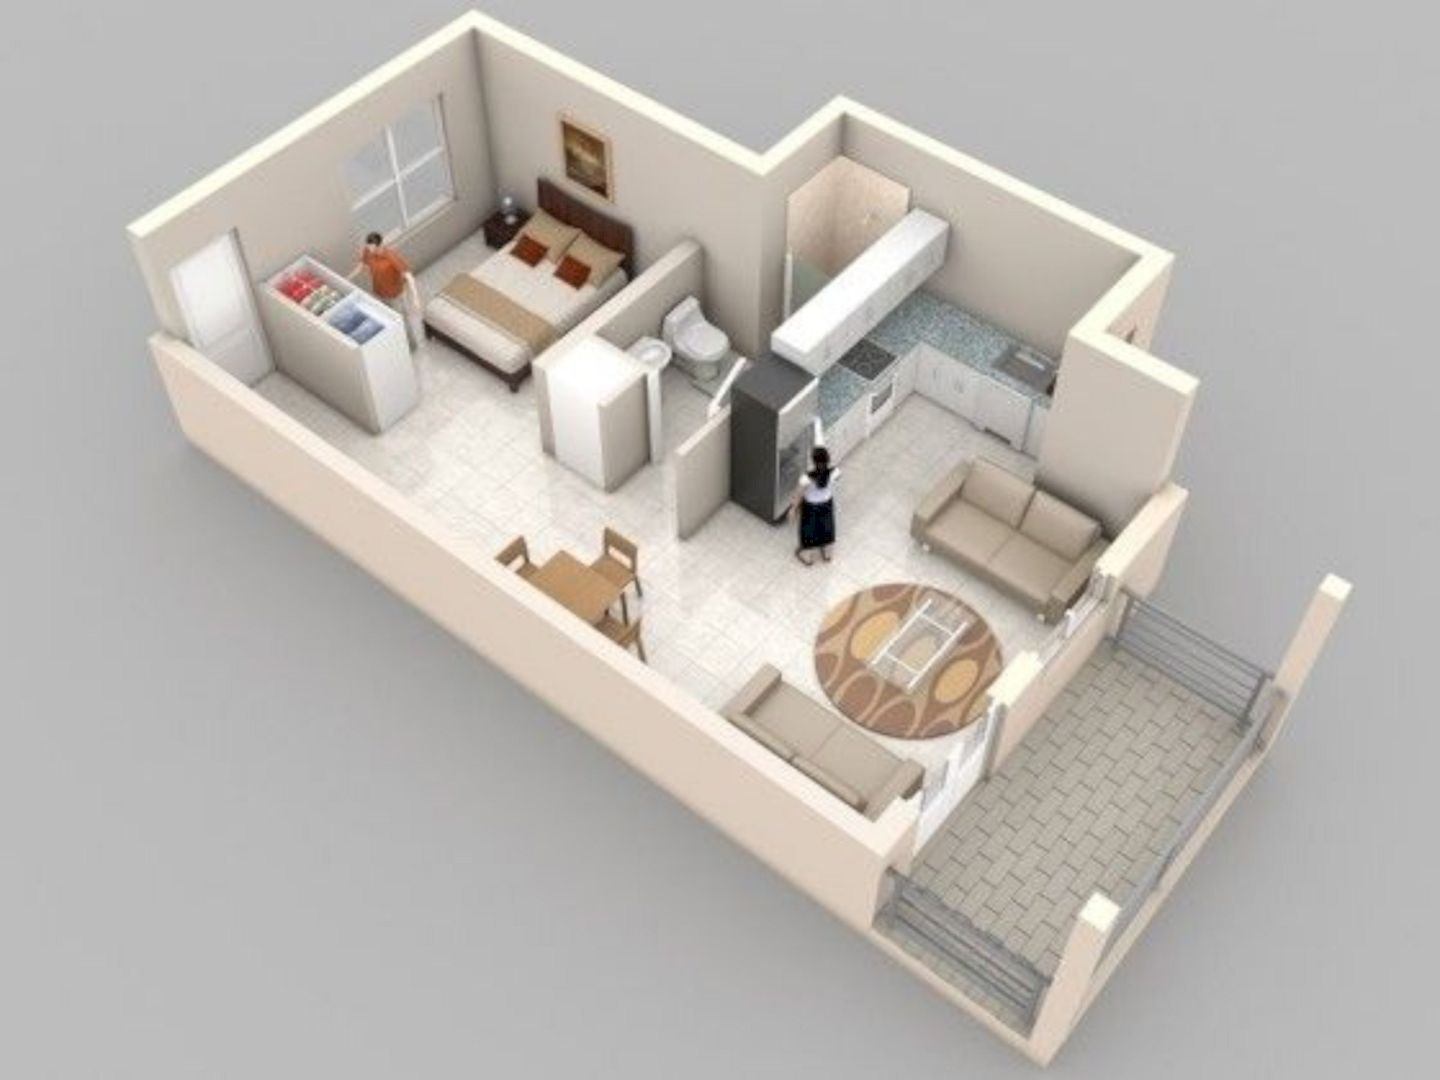 Why Do We Need 3d House Plan Before Starting The Project Studio Apartment Floor Plans Apartment Floor Plans Apartment Layout